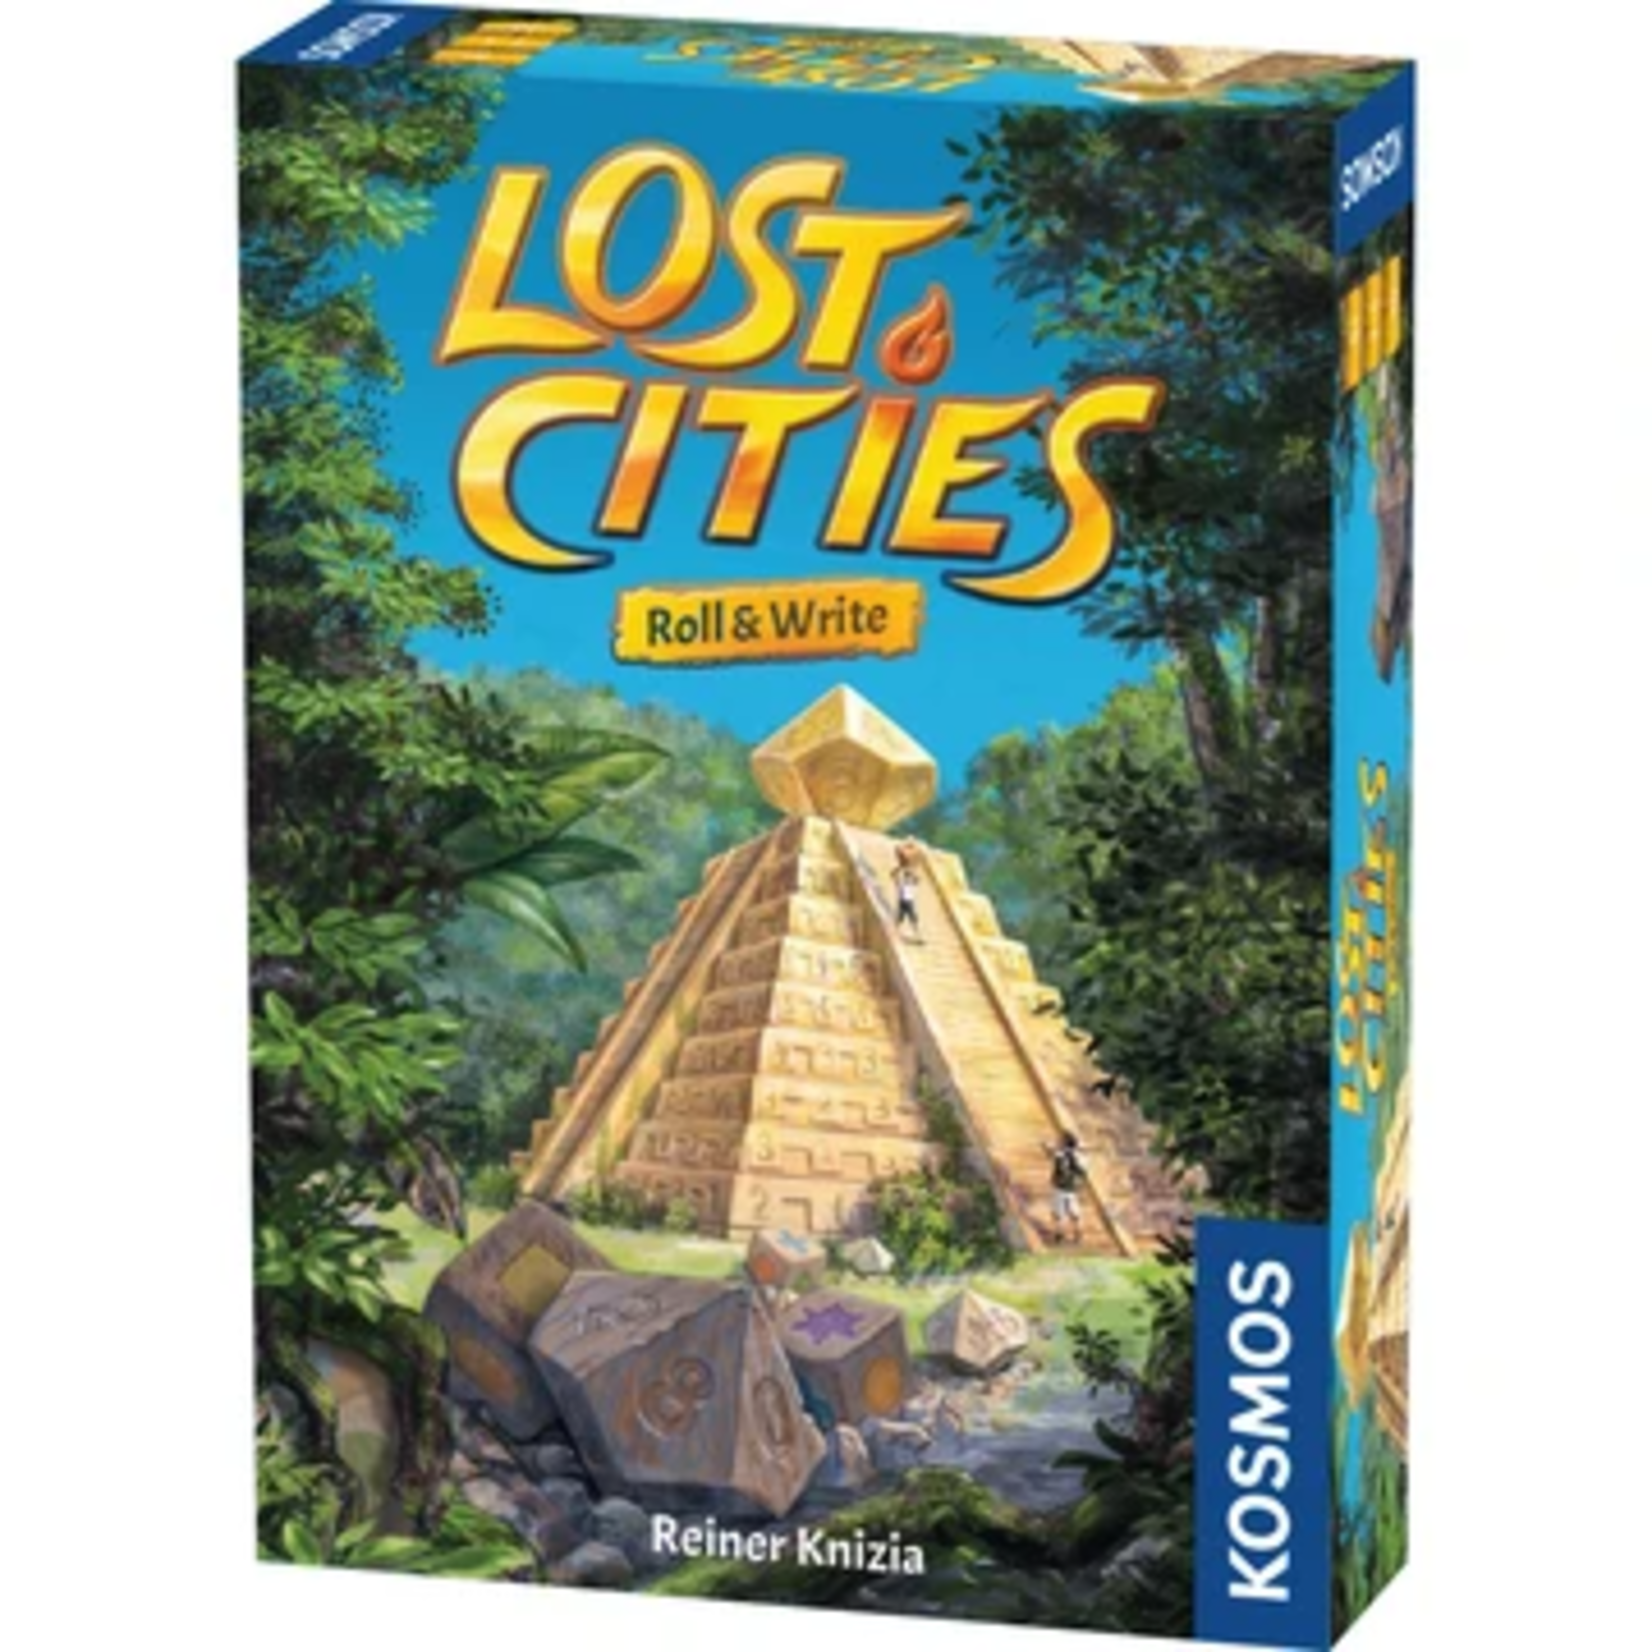 Thames & Kosmos Lost Cities: Roll and Write